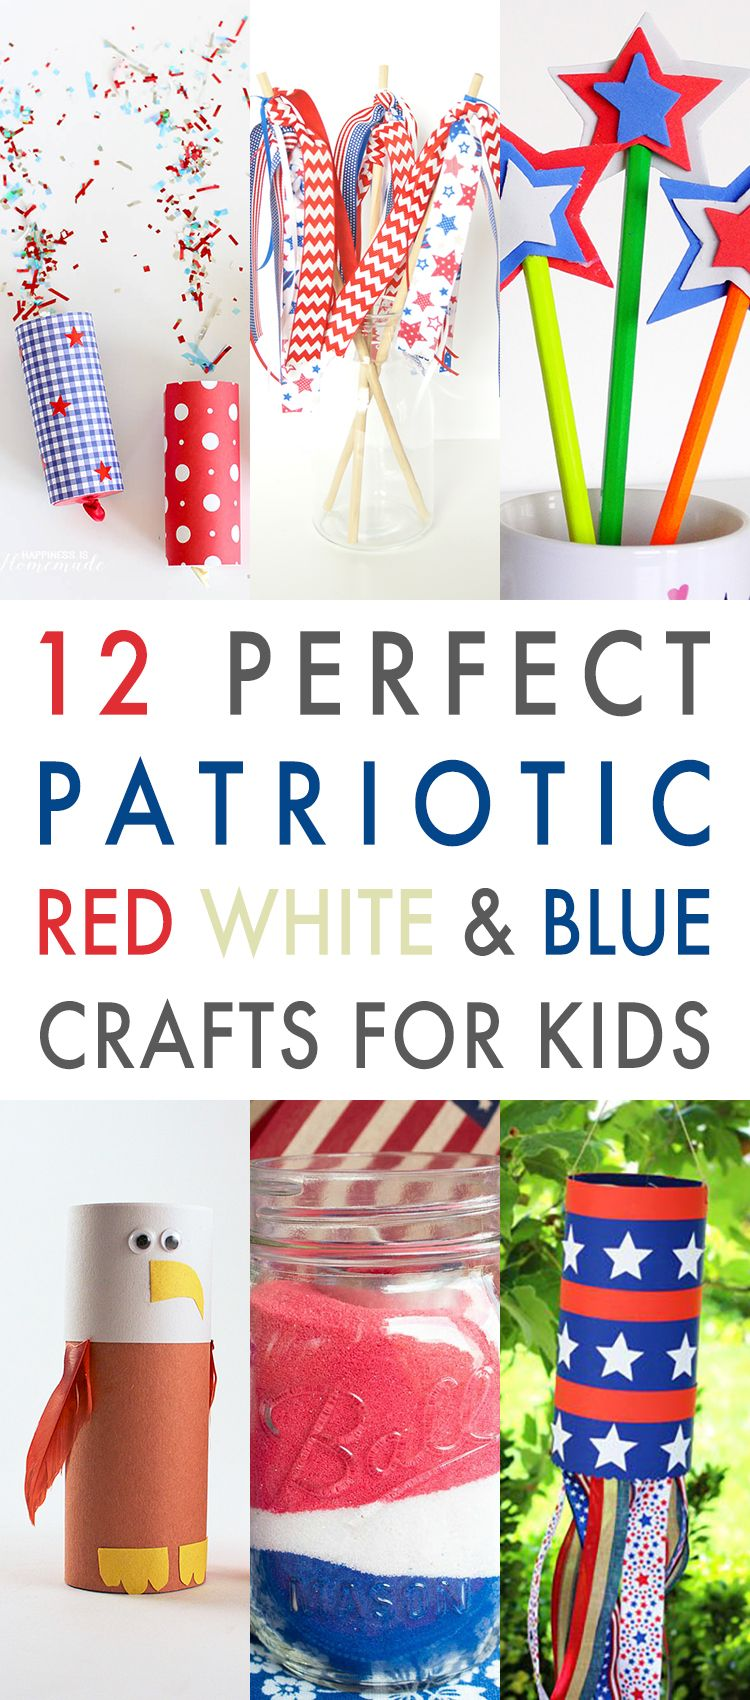 12 Perfect Patriotic Red White and Blue Crafts for Kids #labordaycraftsforkids